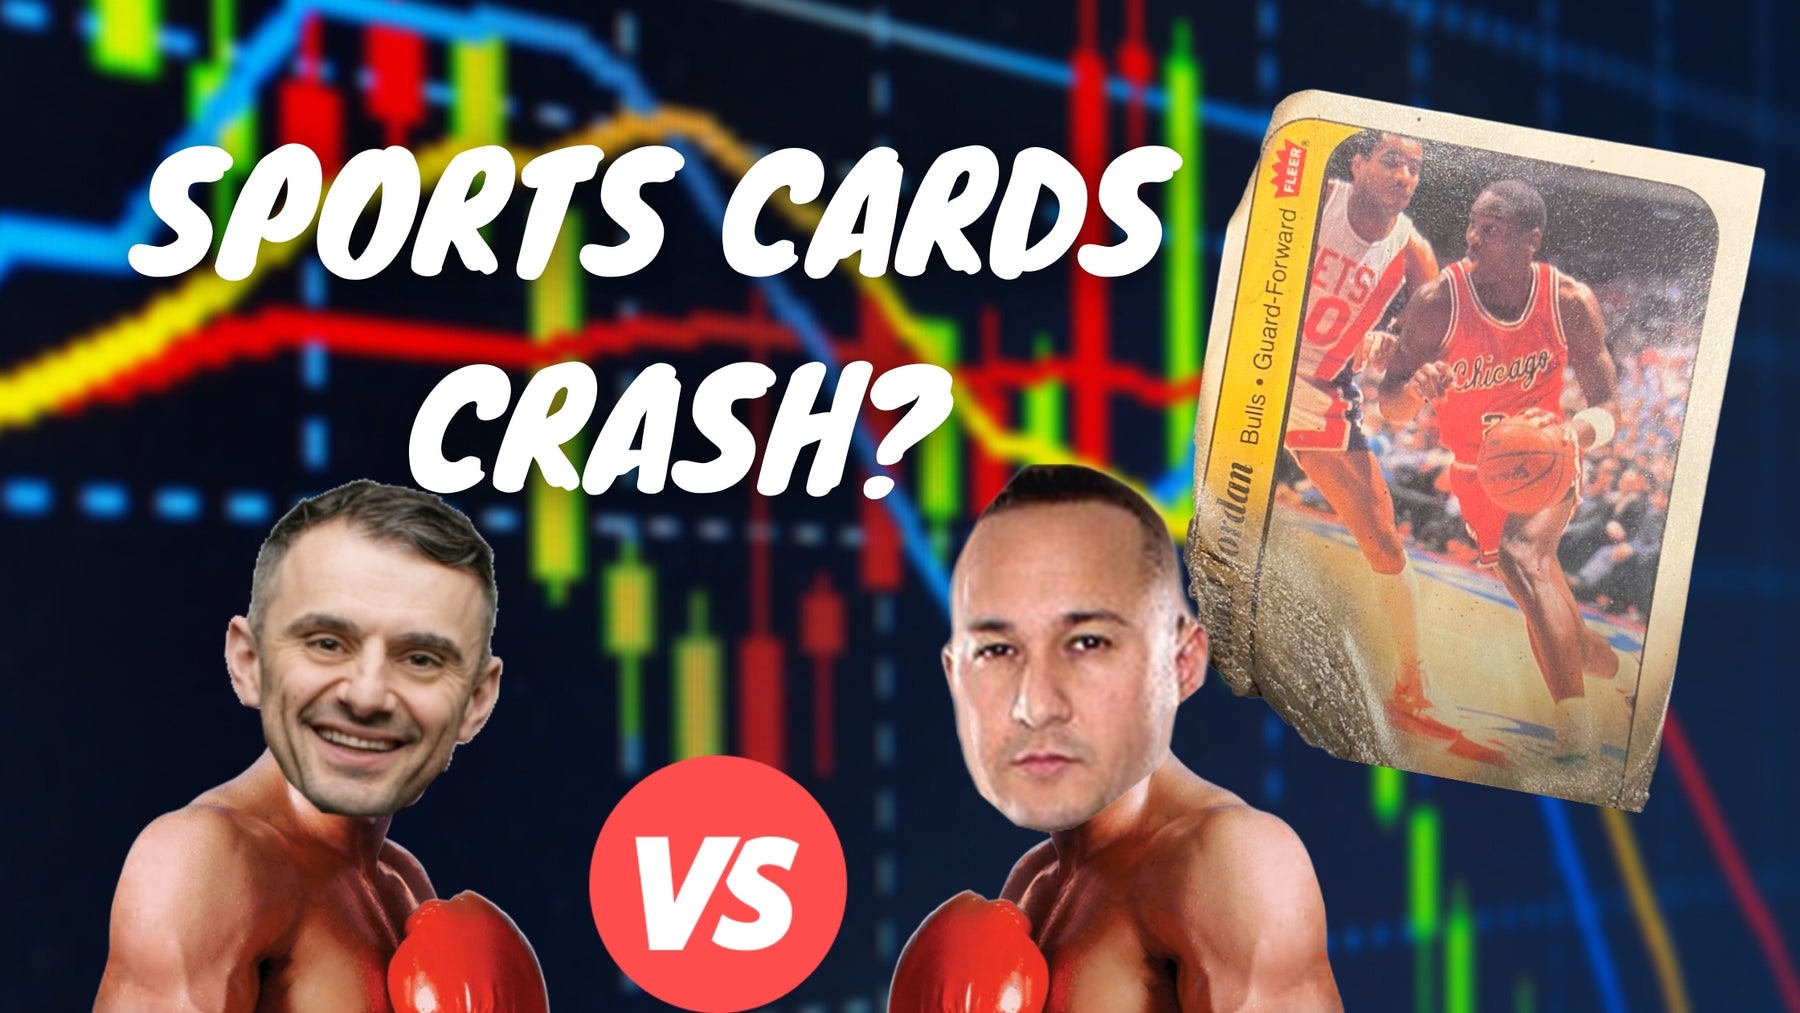 The Sports Card Crash?